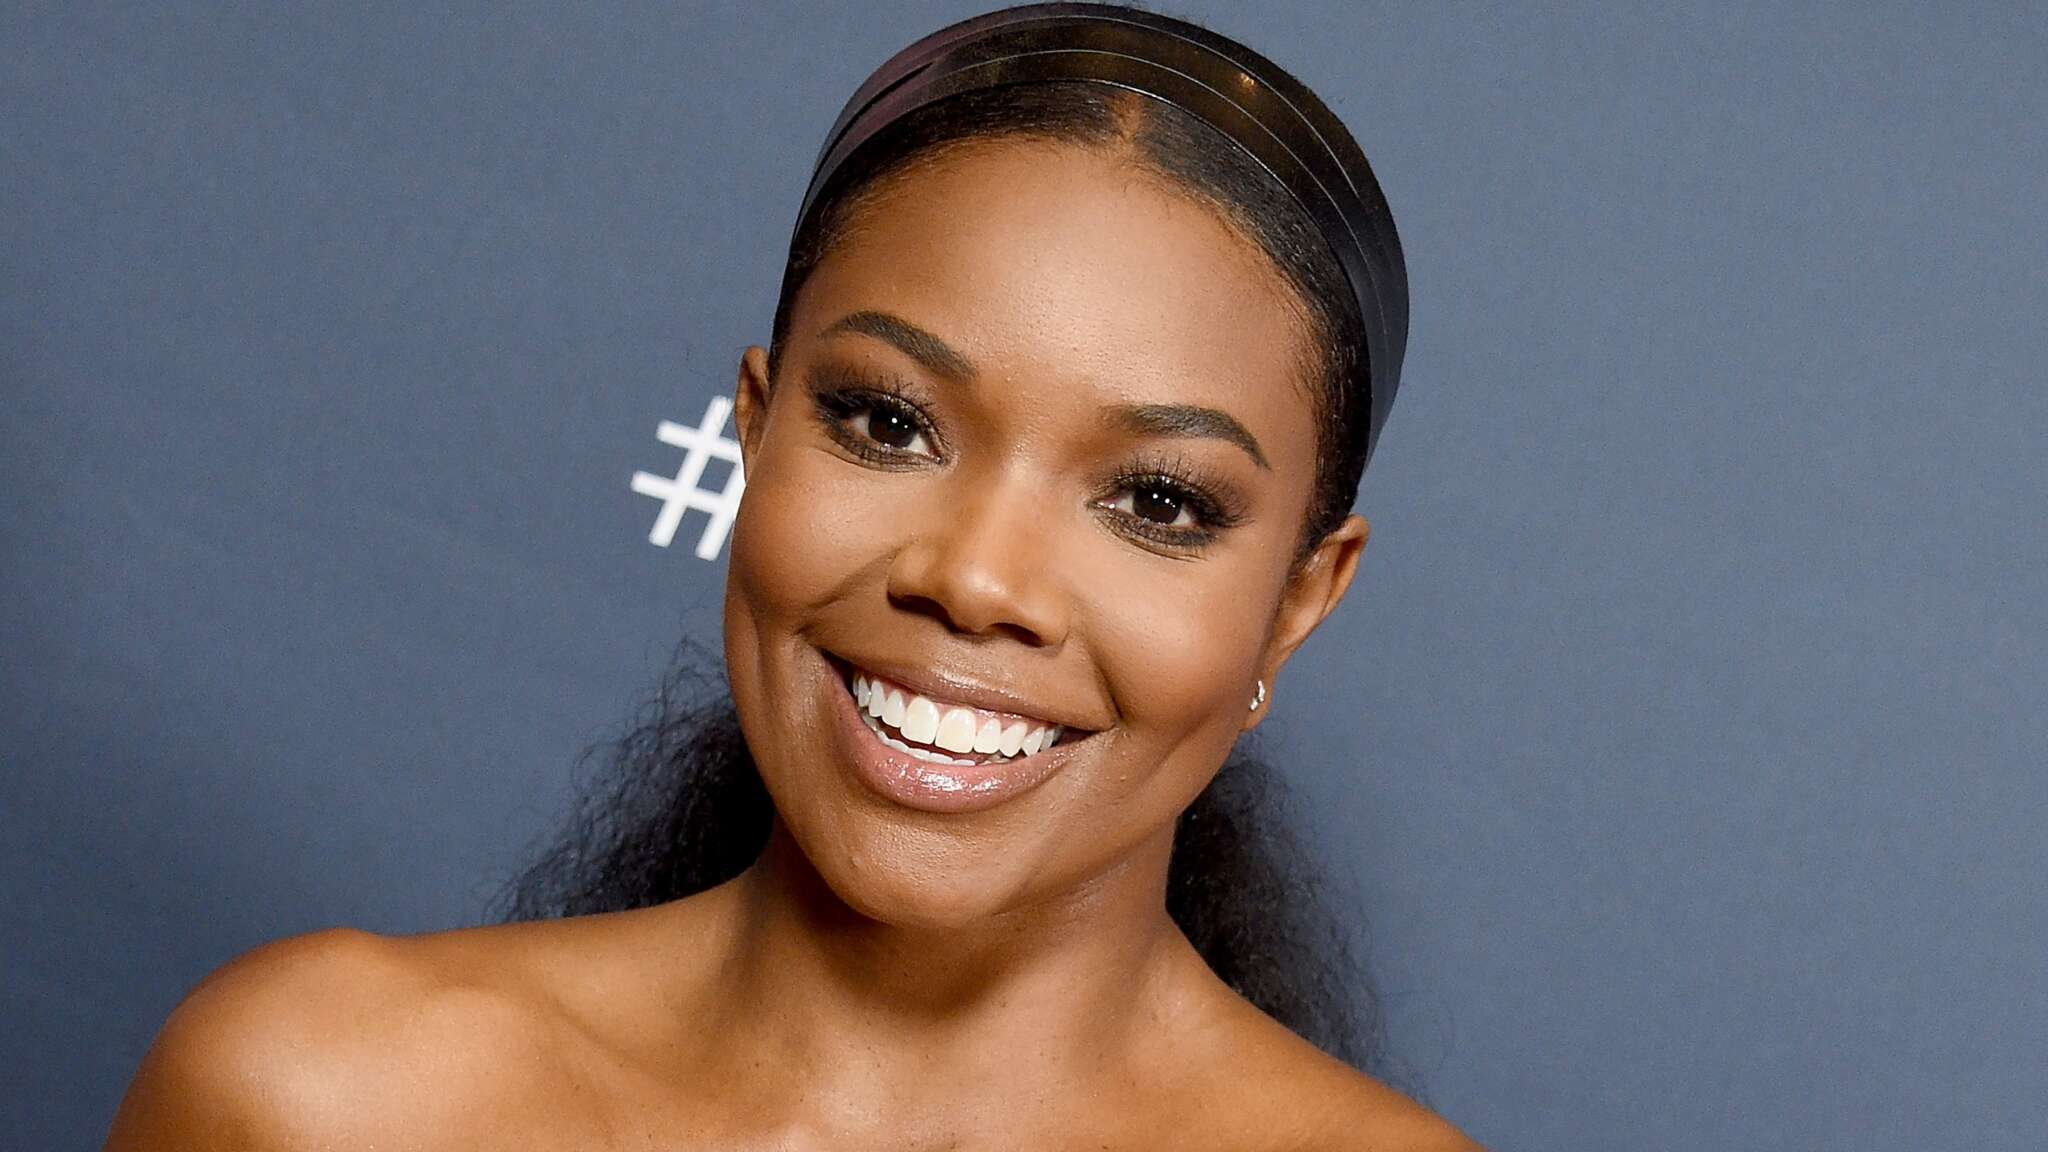 Gabrielle Union Looks Gorgeous In This Outfit - See Her Look Here